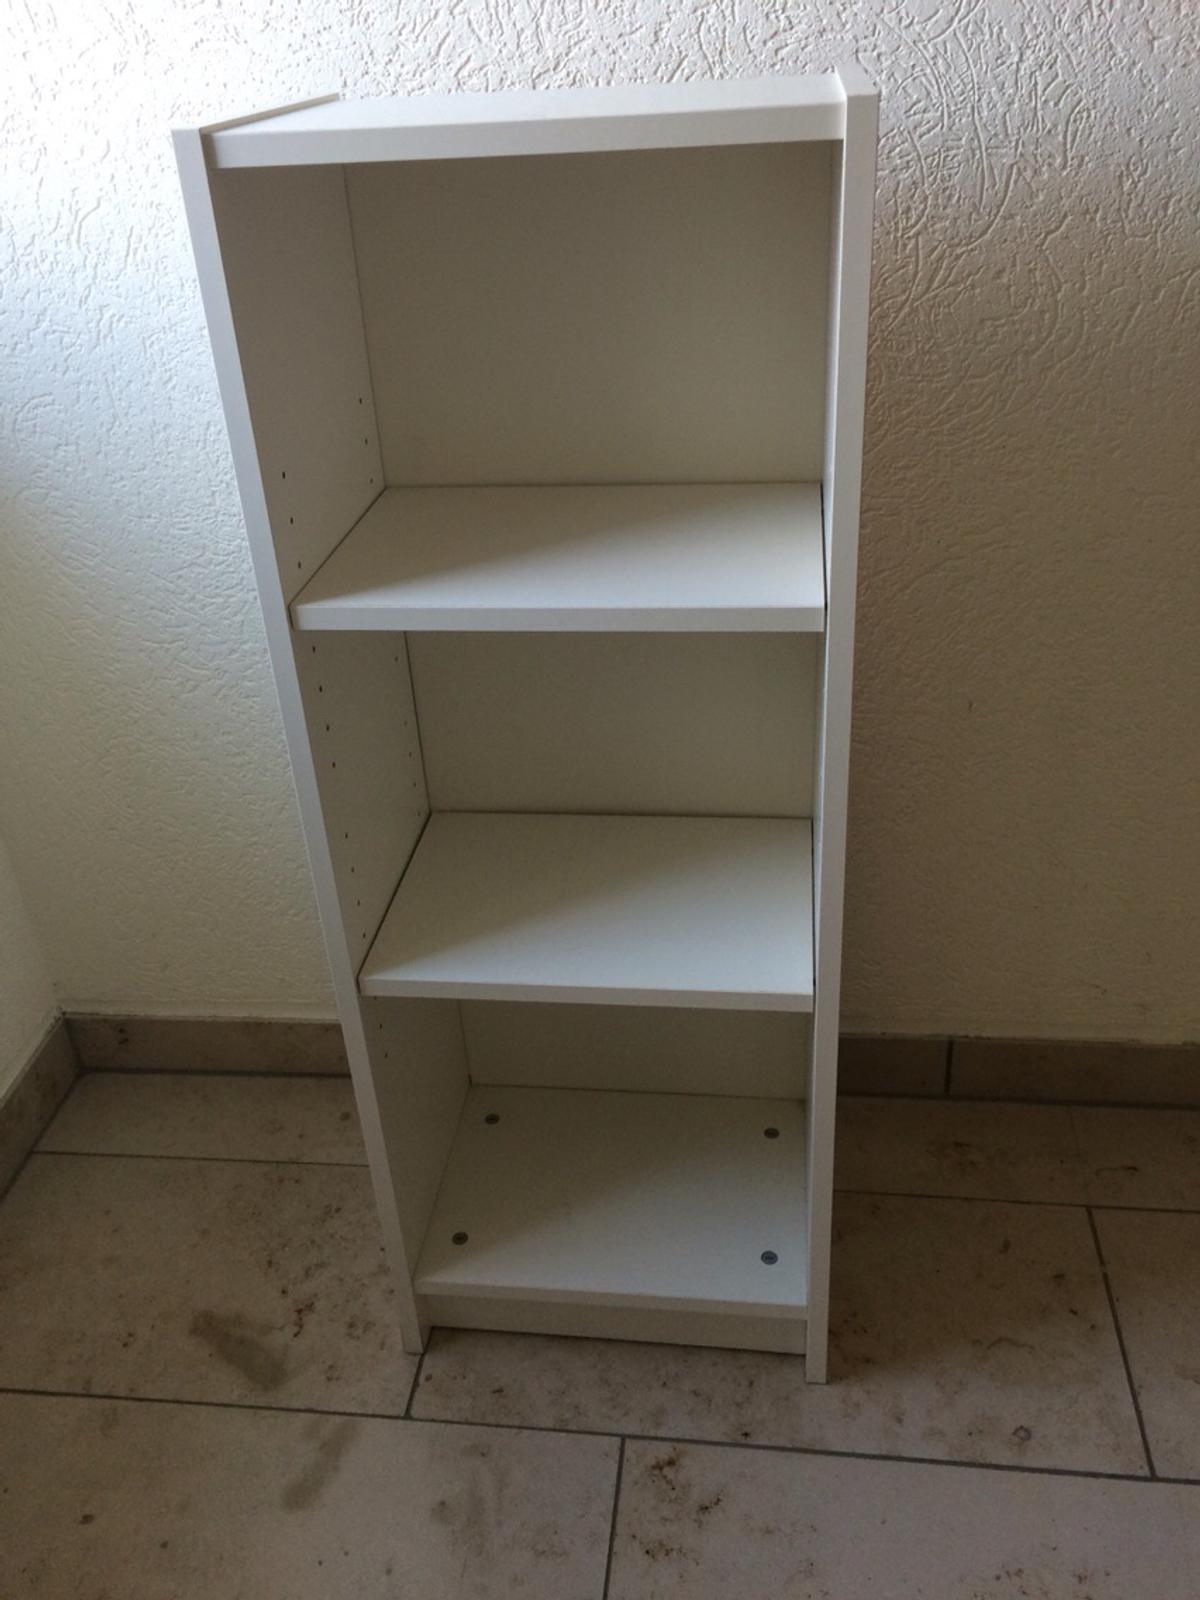 Ikea Billy Regal Weiss In 53340 Meckenheim For 15 00 For Sale Shpock